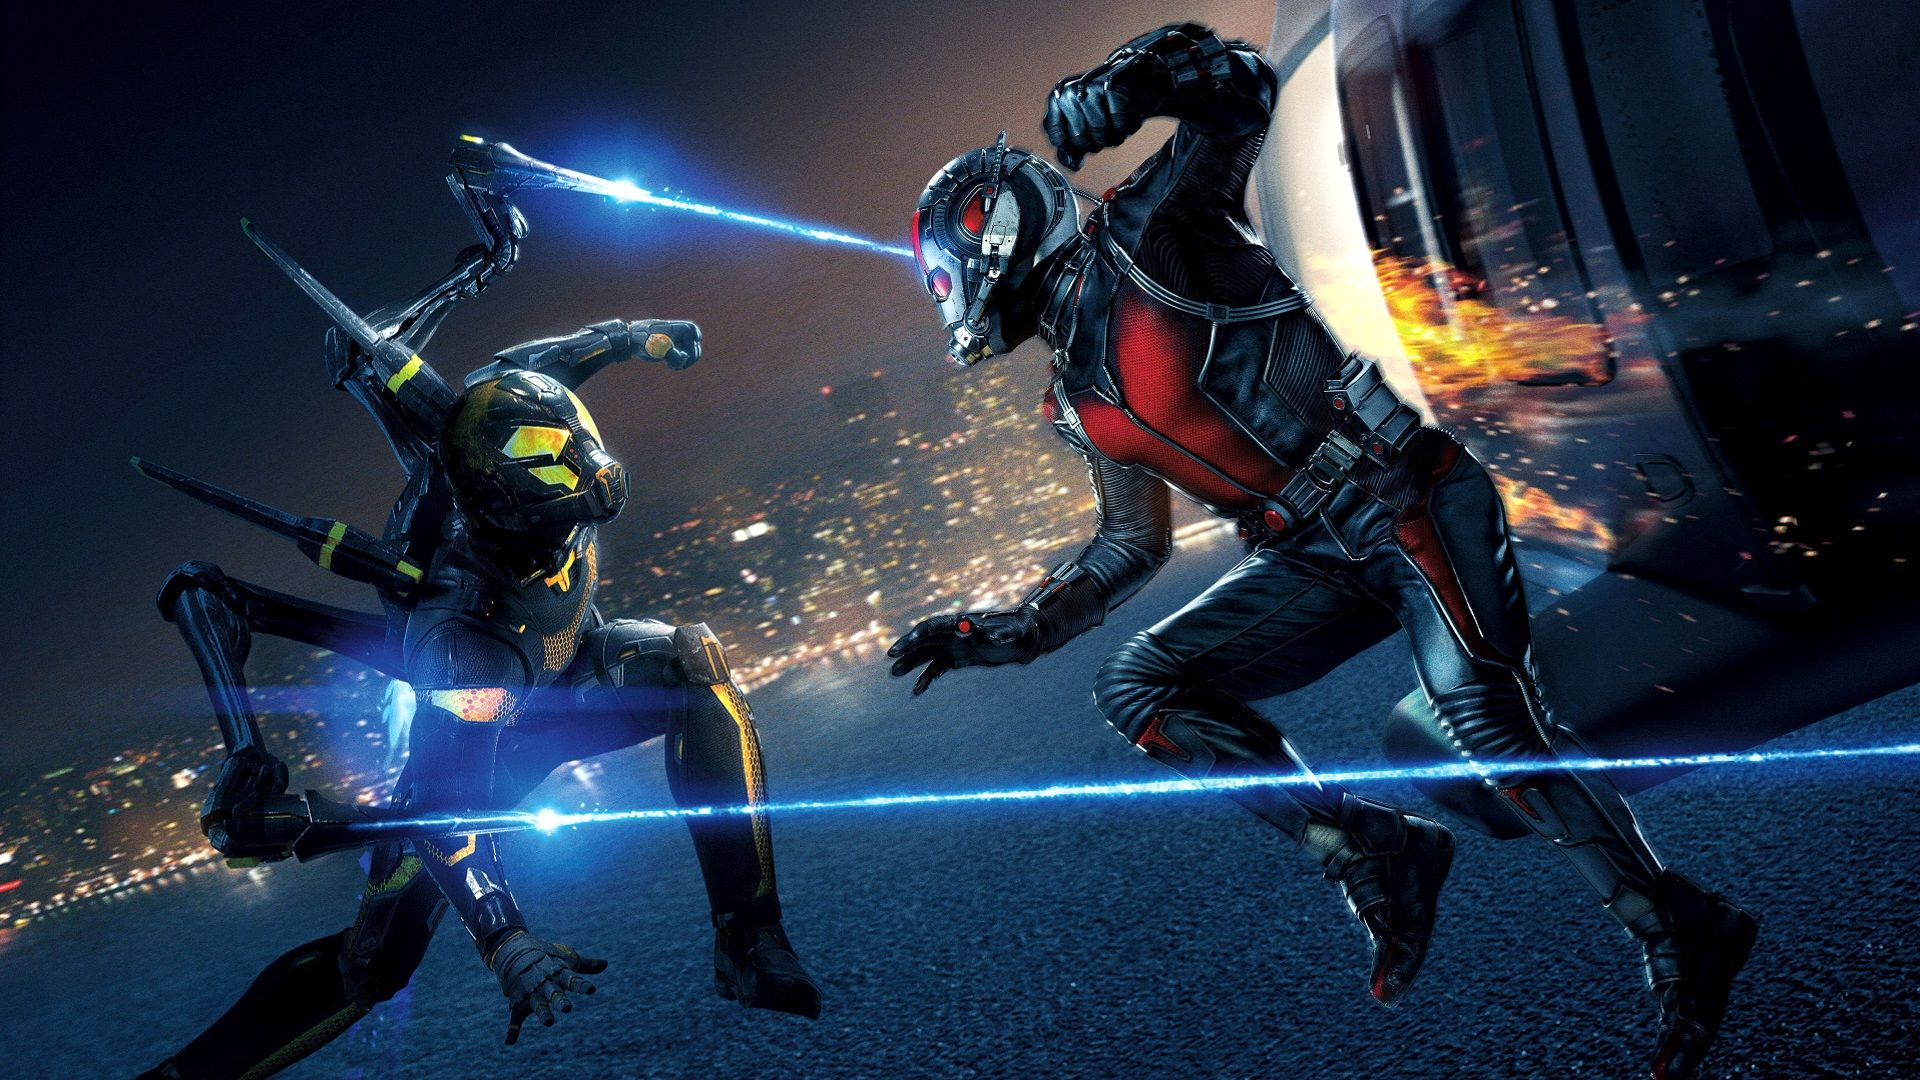 View, download, comment, and rate this 1920x1080 AntMan